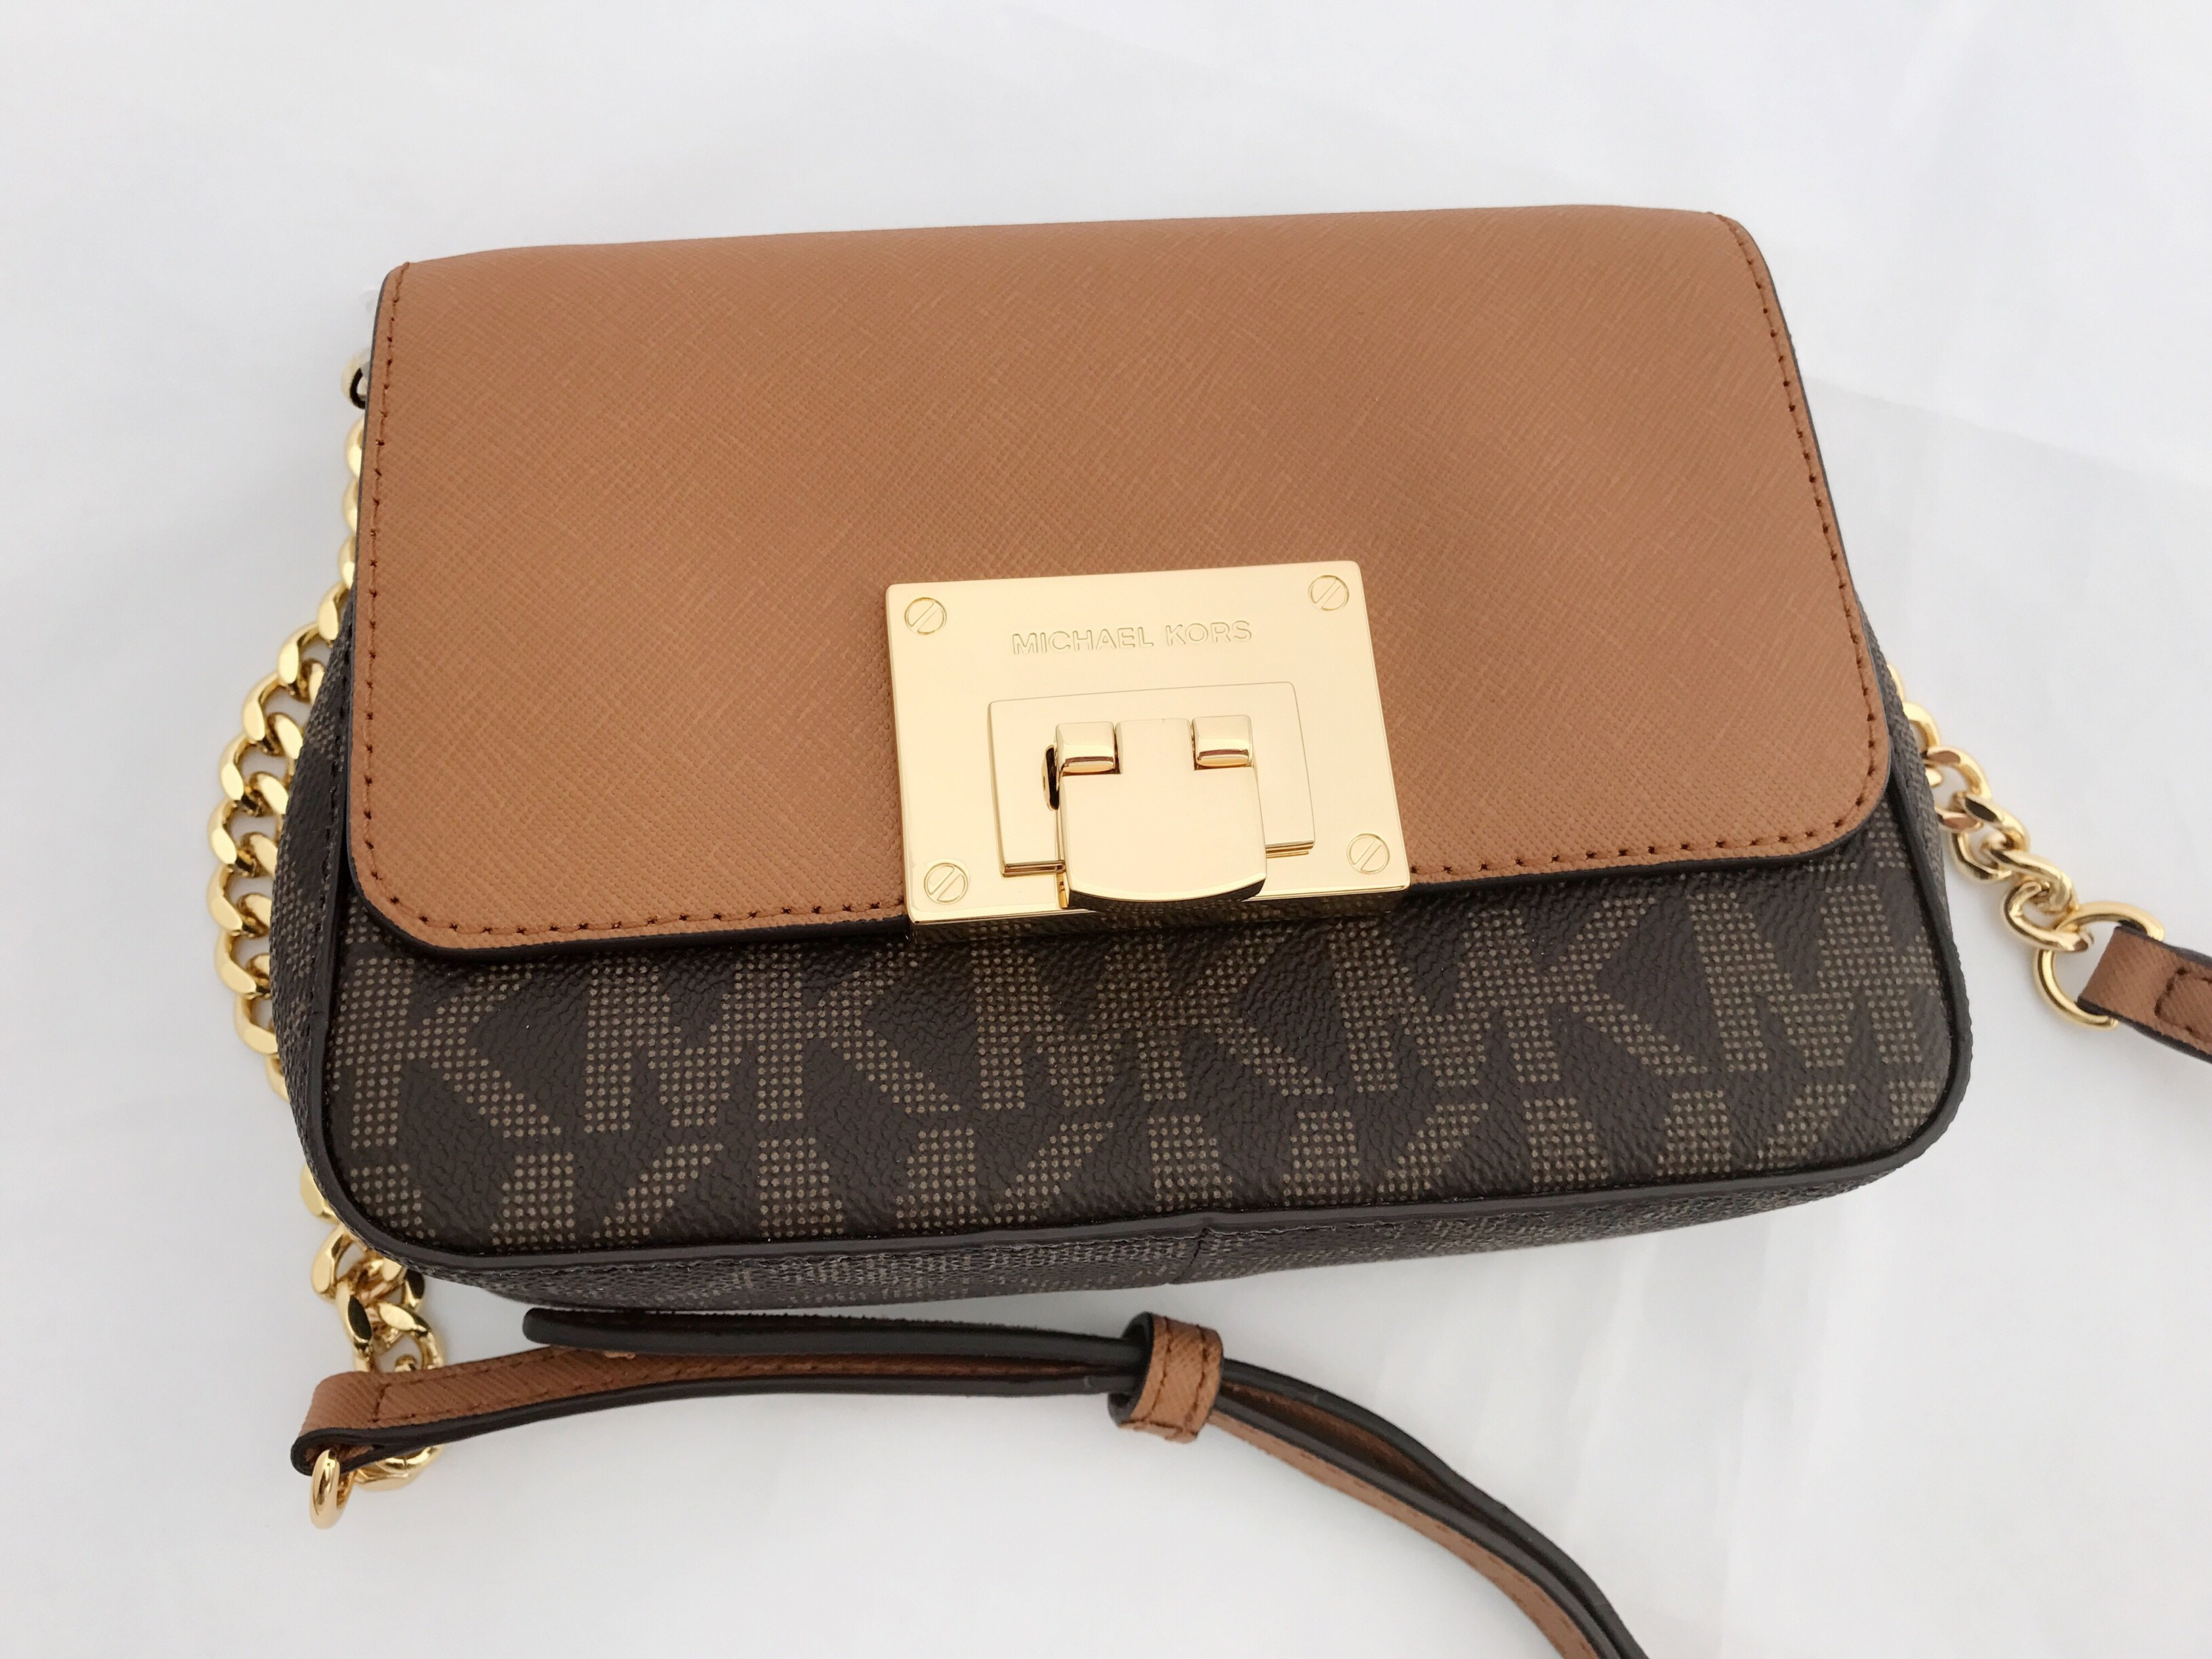 Nwt Michael Kors Tina Mk Signature Small Mini Crossbody Bag Brown Acorn Flap